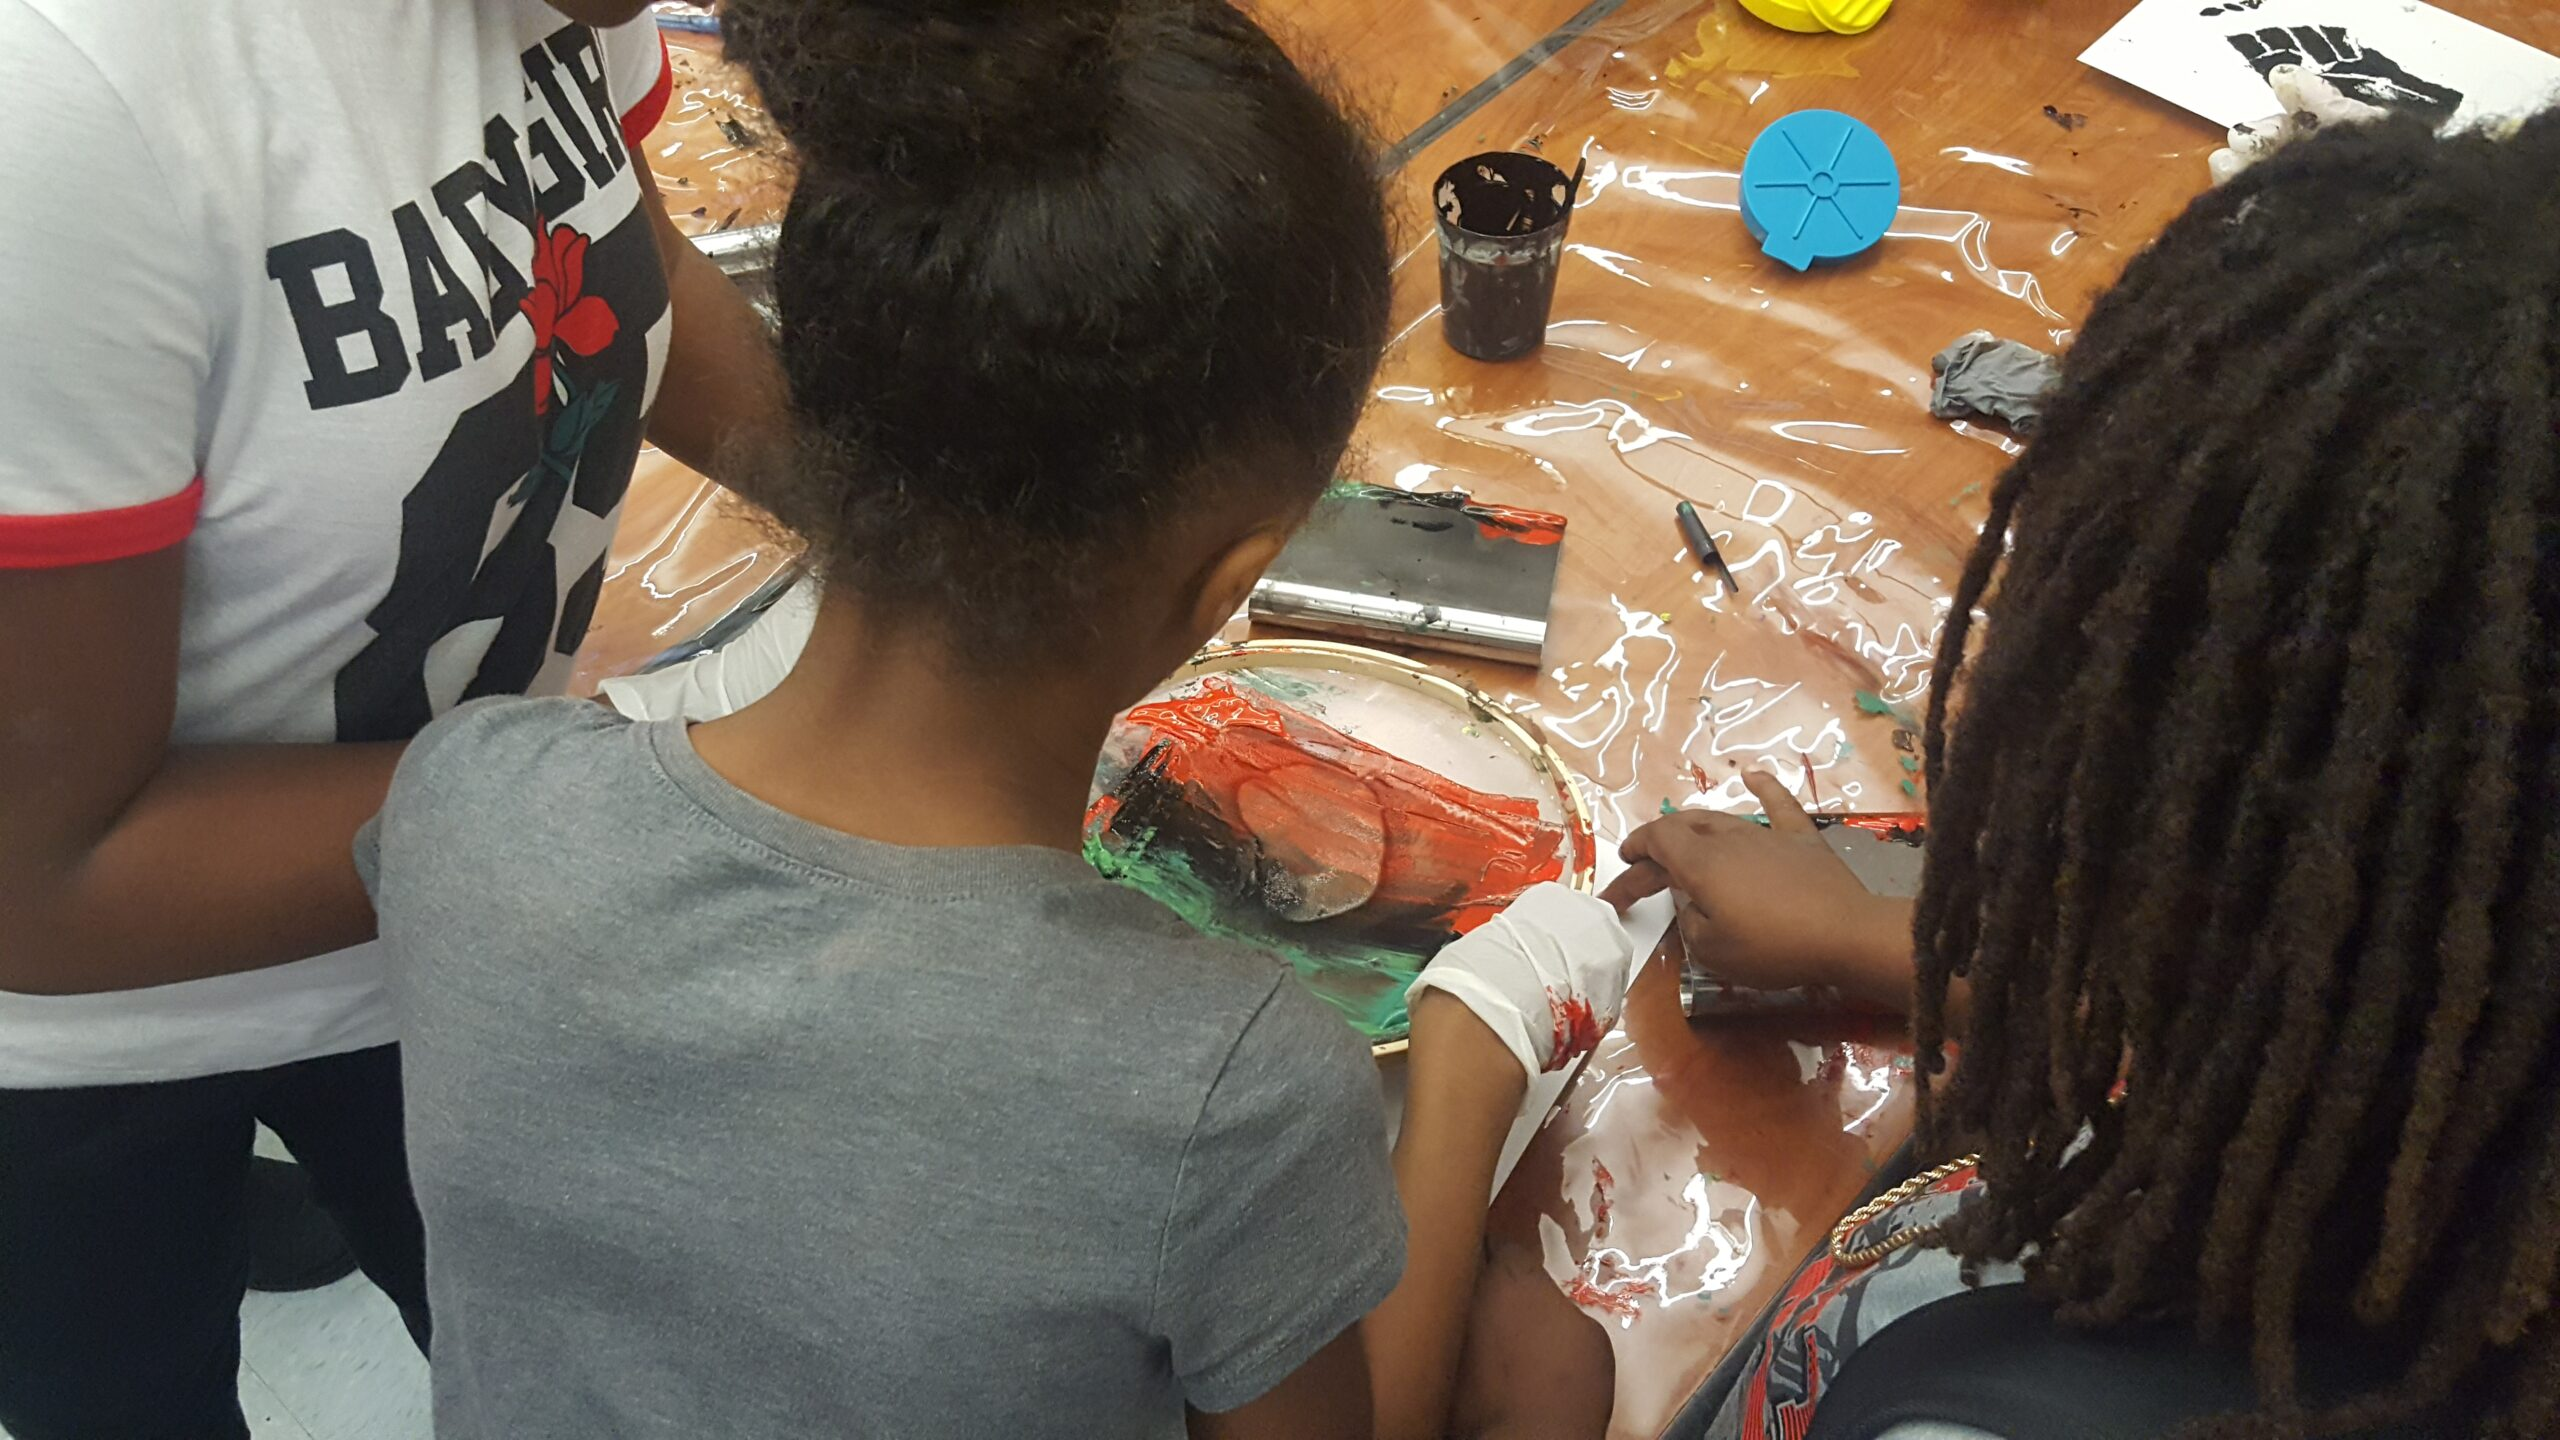 3 Black students at Grass Valley Elementary School in Oakland, CA participate in screenprinting together.